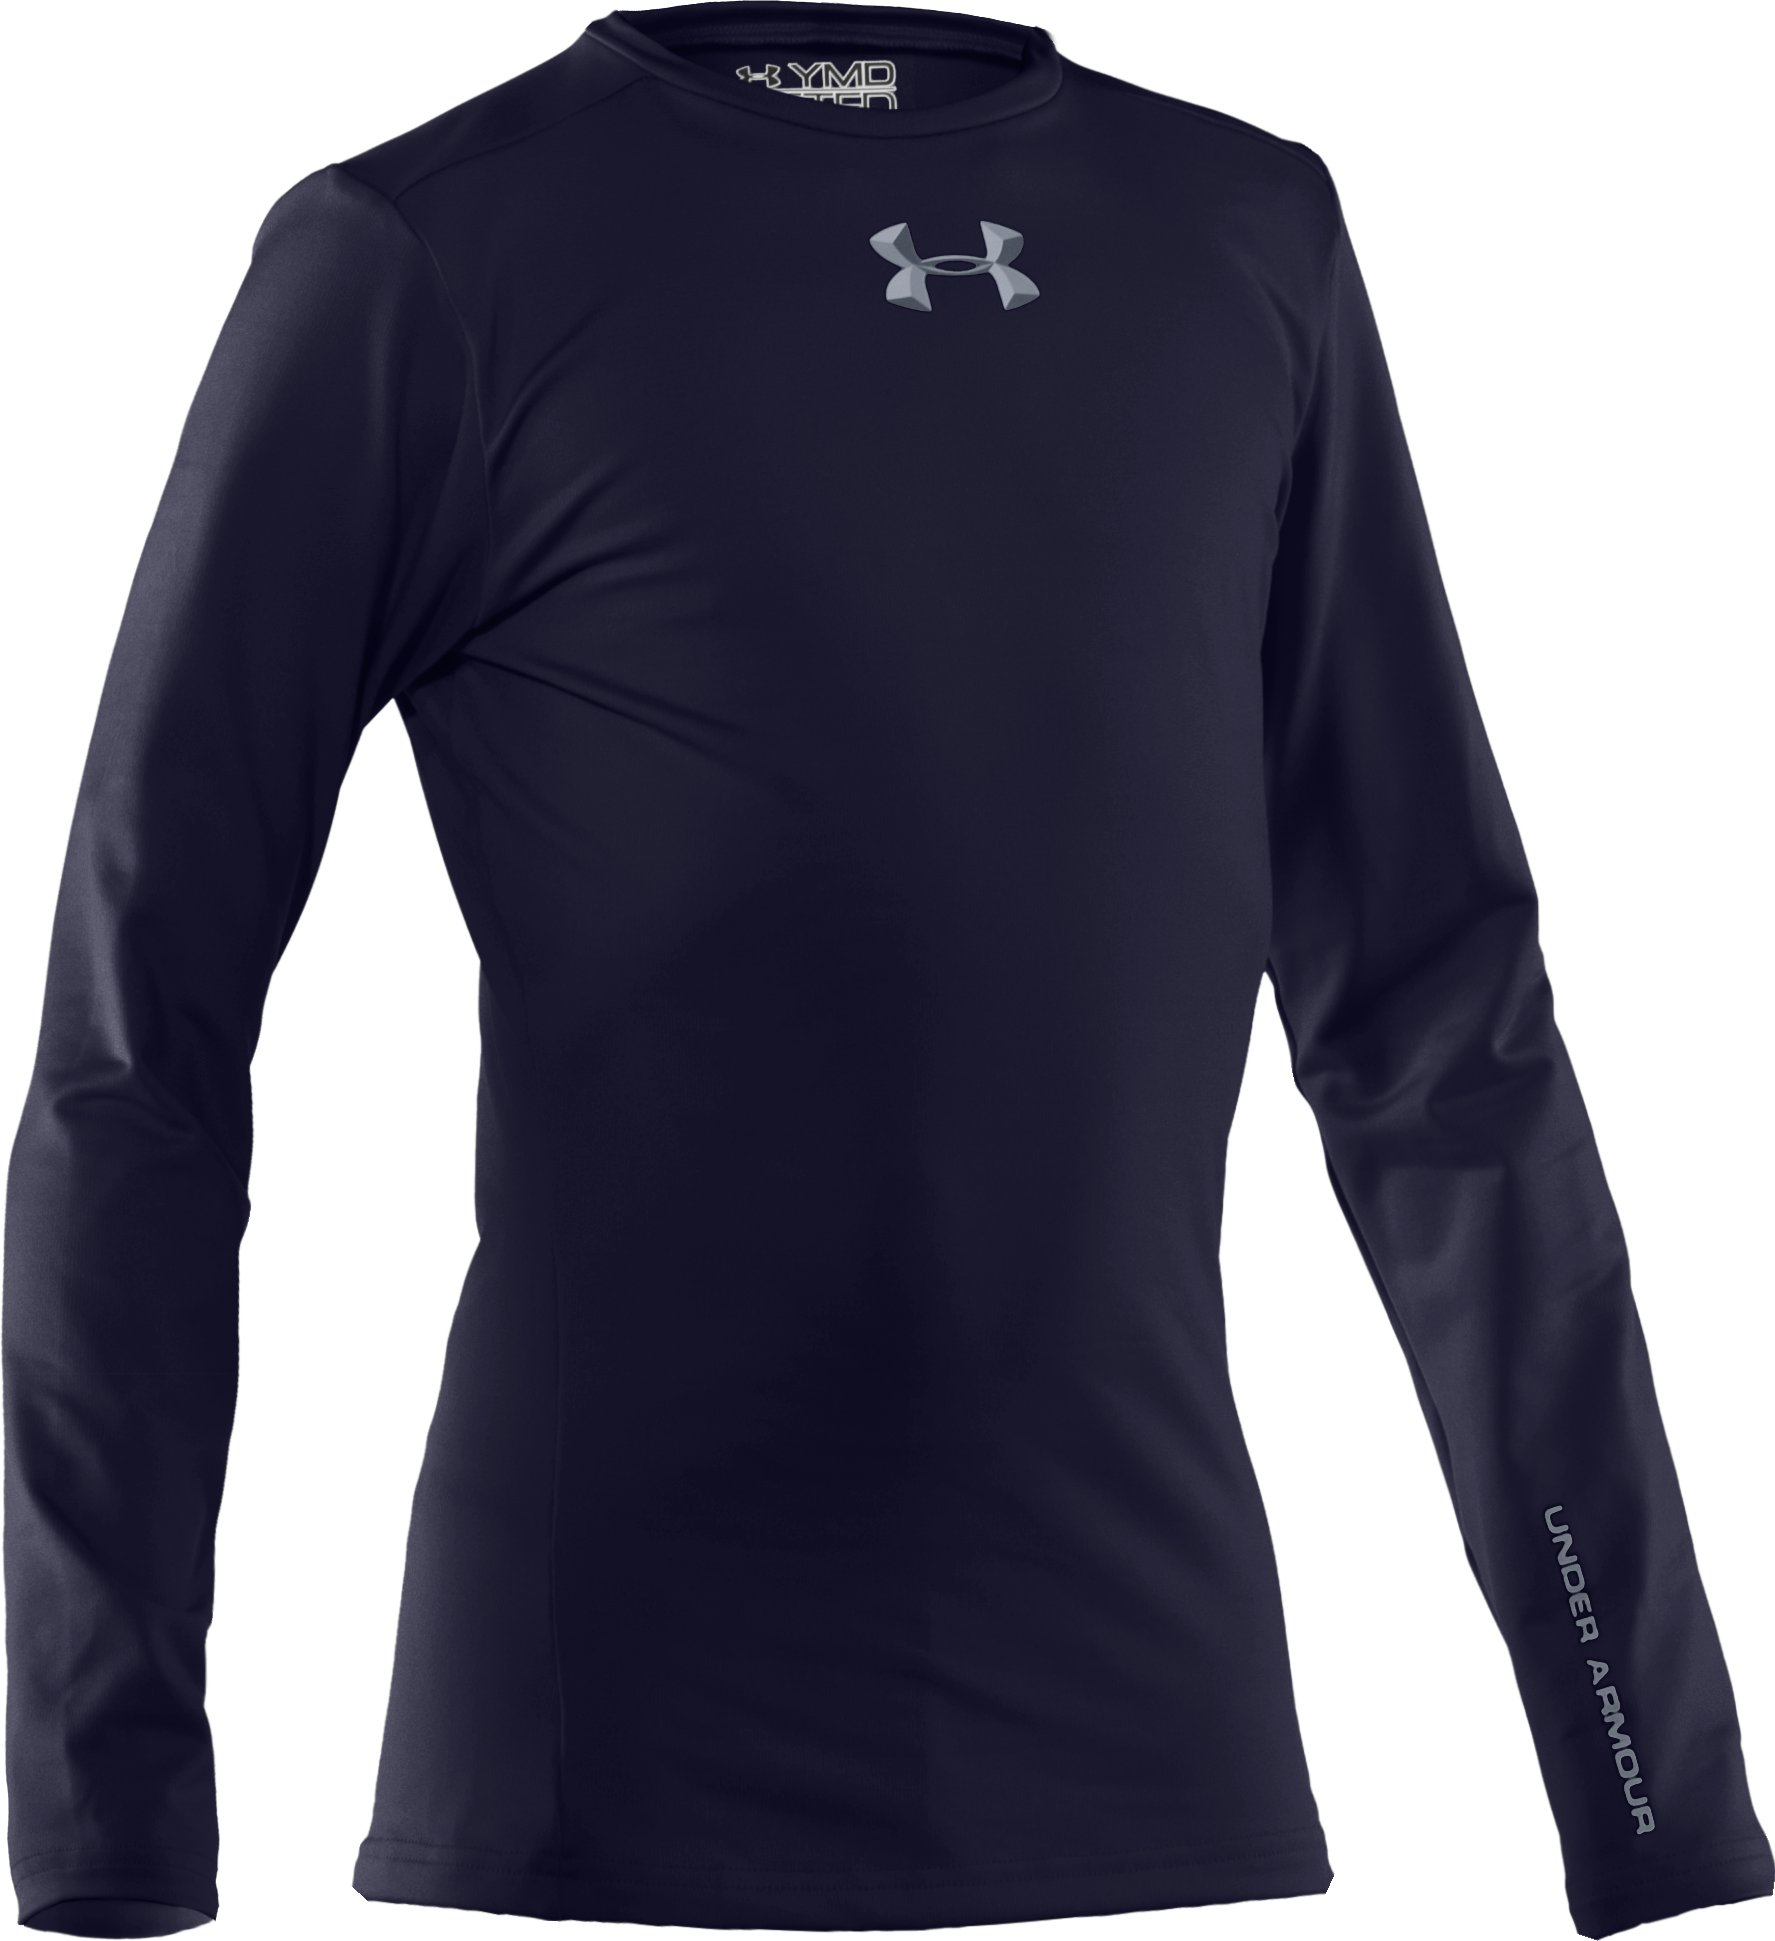 Boys' ColdGear® Evo Fitted Baselayer Crew, Midnight Navy